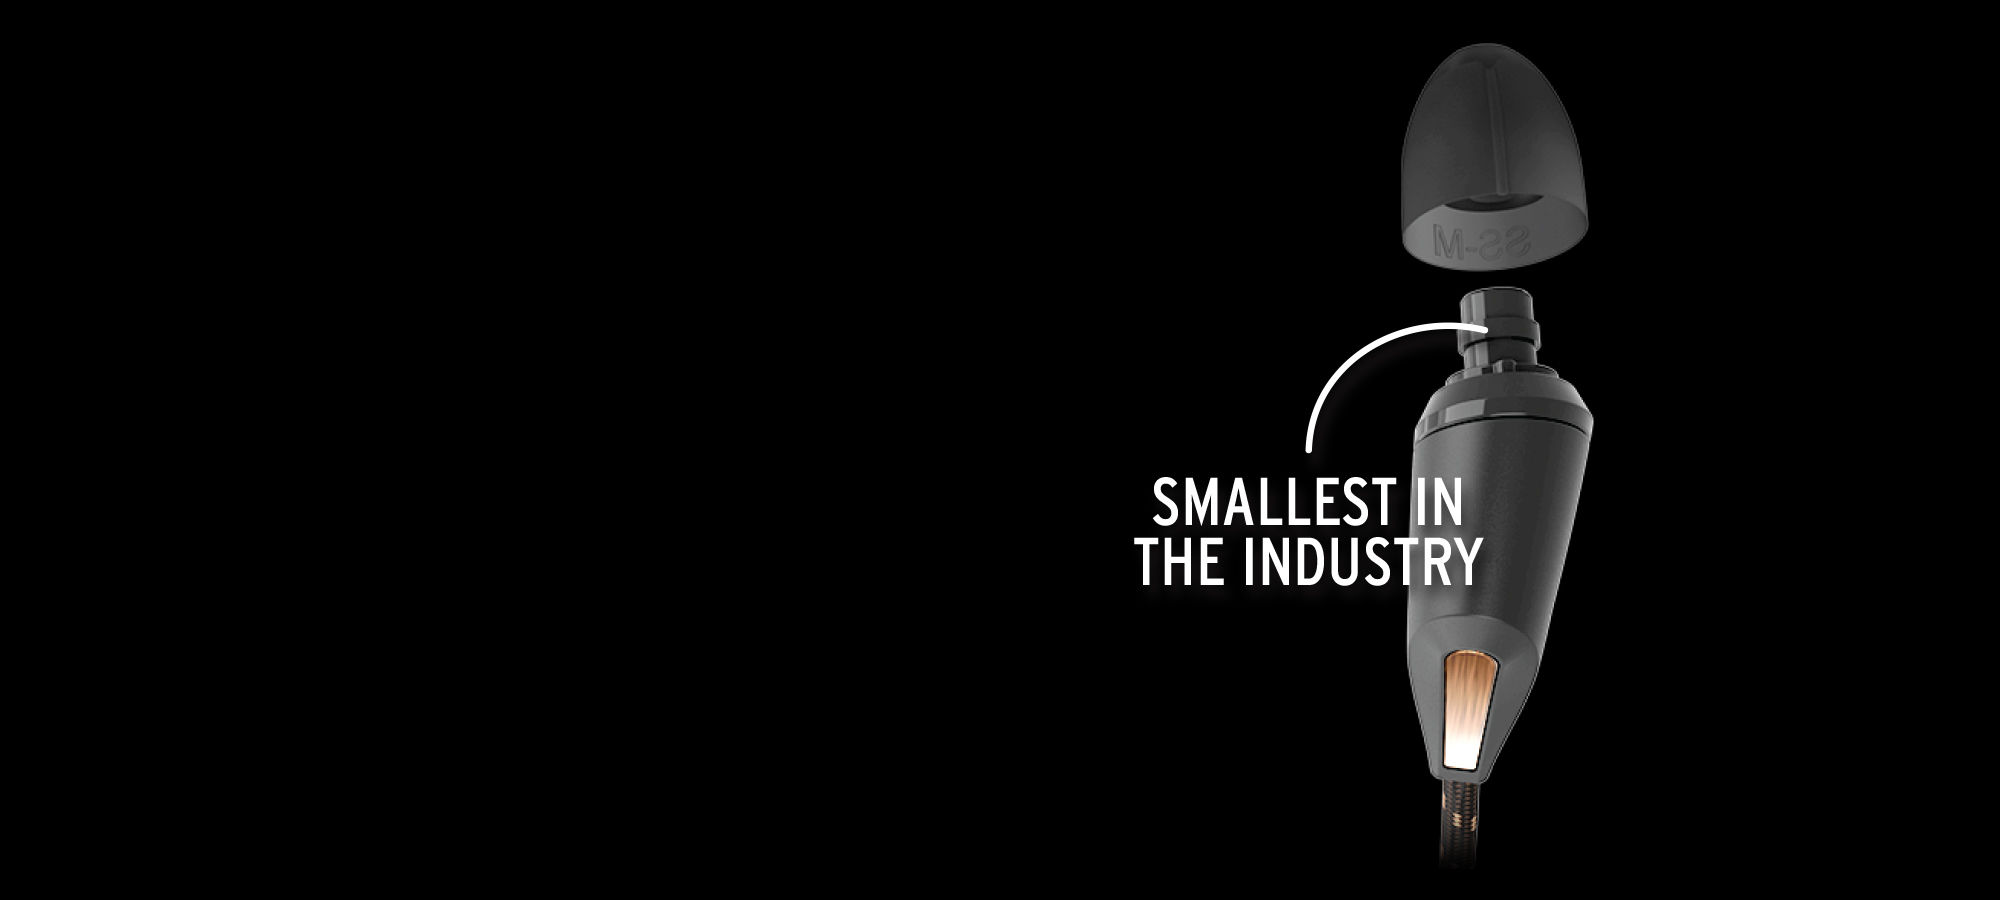 Diagram of the comfortable size of Klipsch earphones, the smallest in the industry